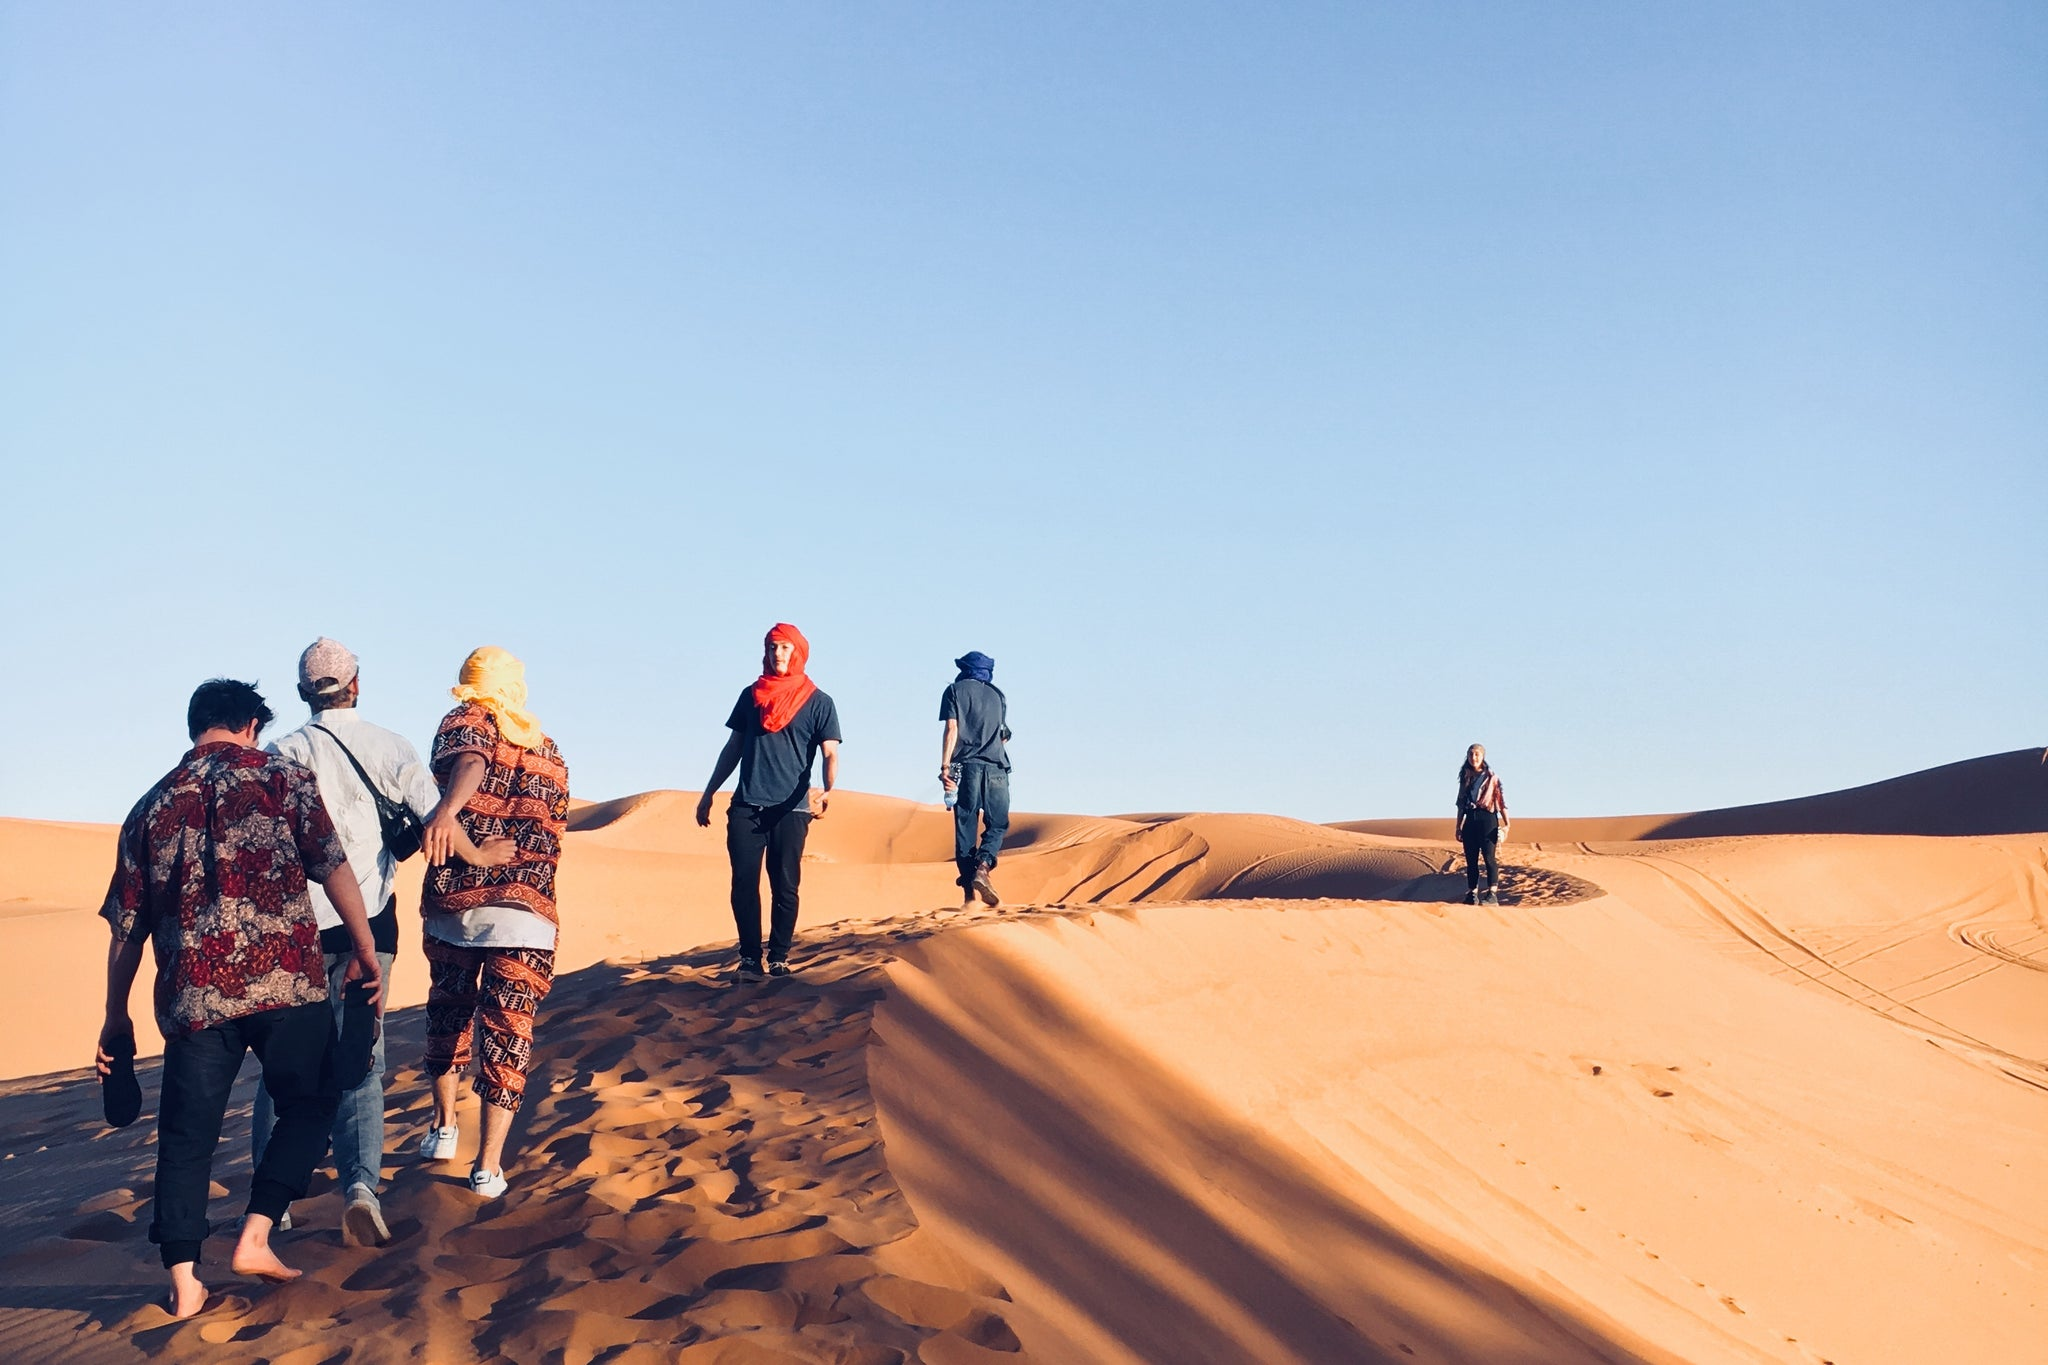 Friends exploring the western Sahara together. Blue skies and yellow sand as far as the eye can see